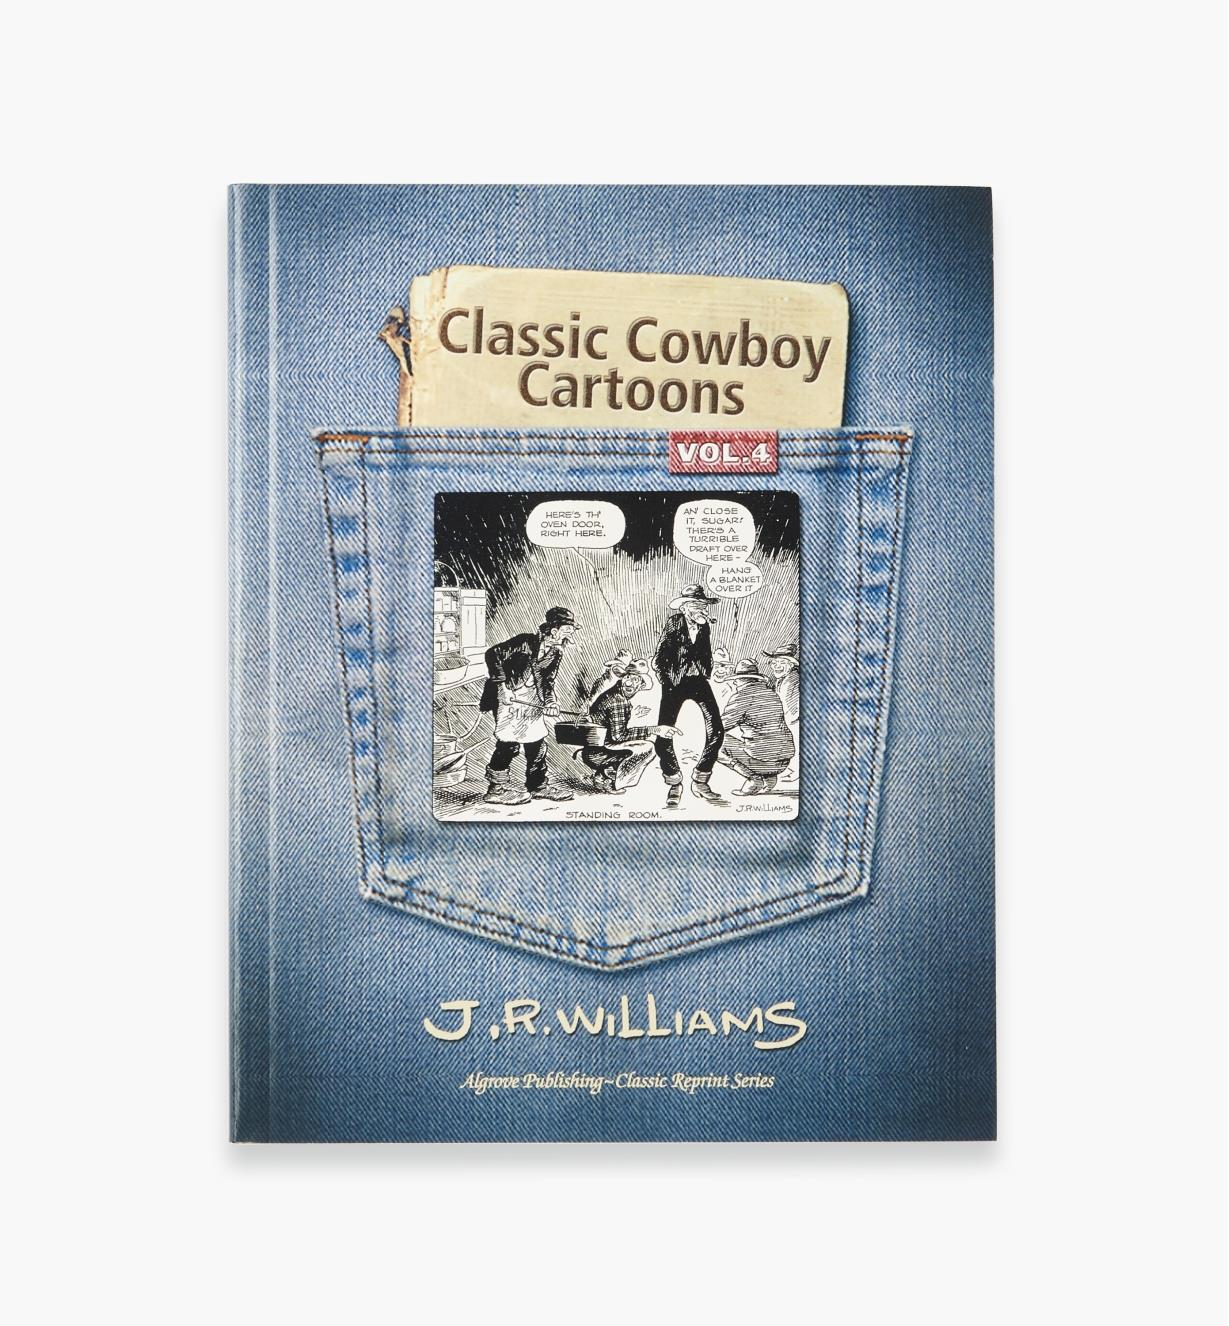 49L8119 - Classic Cowboy Cartoons, Vol. 4